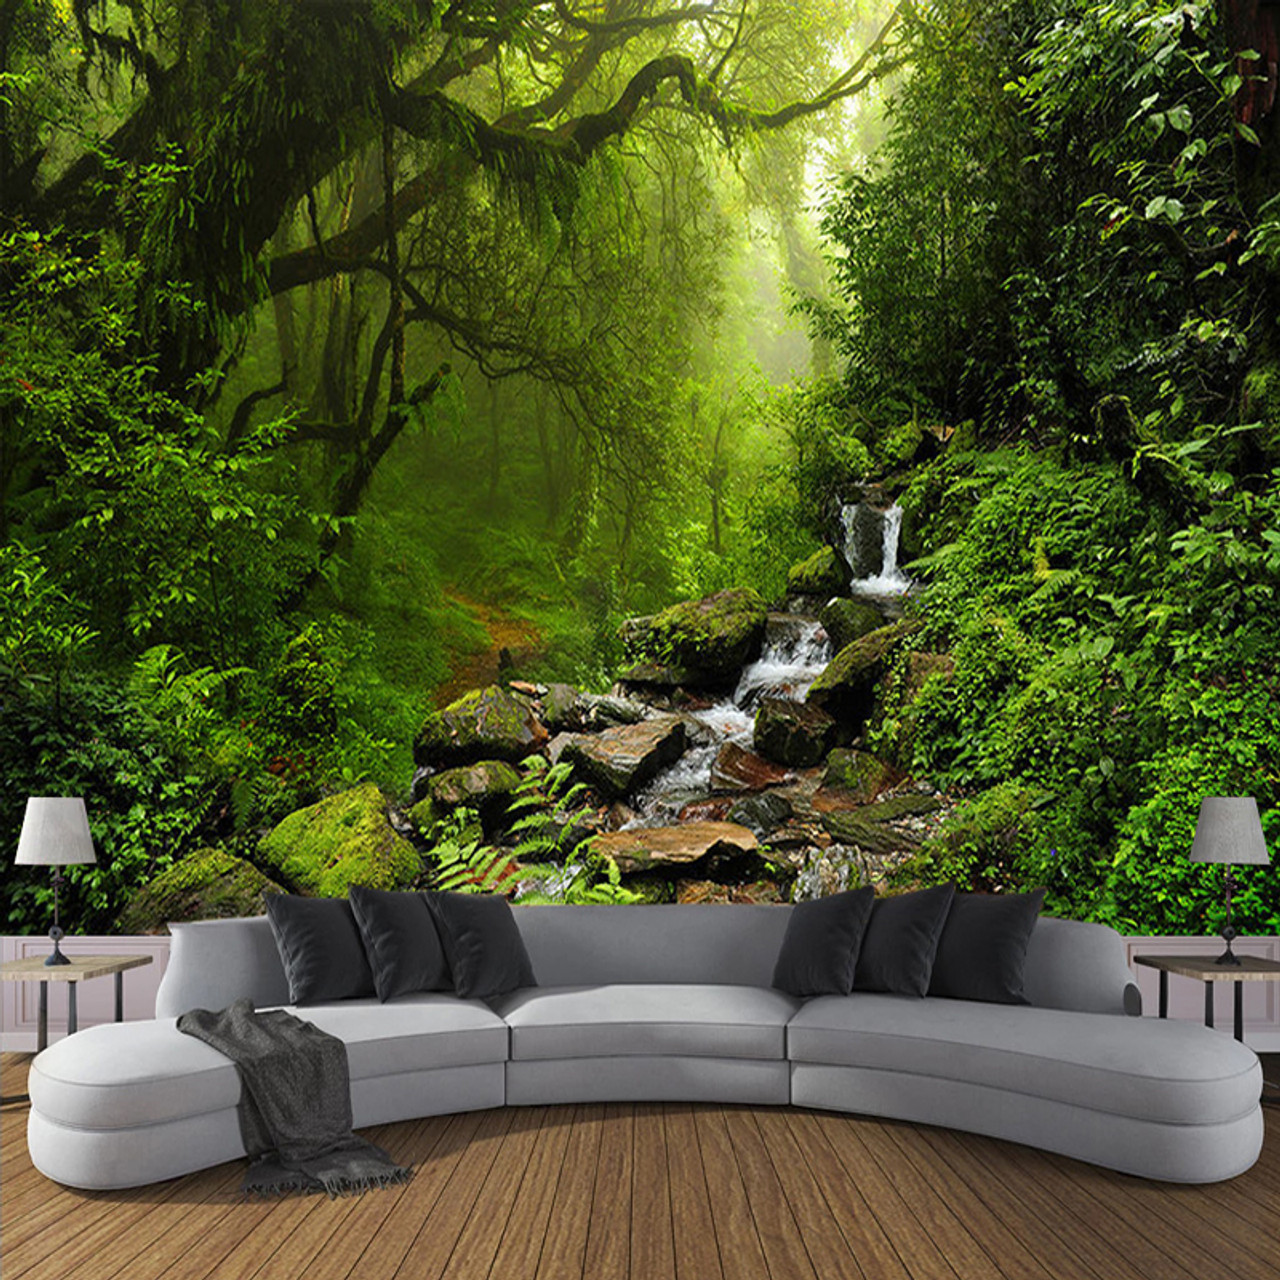 Custom 3d Wall Mural Wallpaper For Bedroom Photo Background Wall Papers Home Decor Living Room Modern Painting Wall Paper Rolls Onshopdeals Com